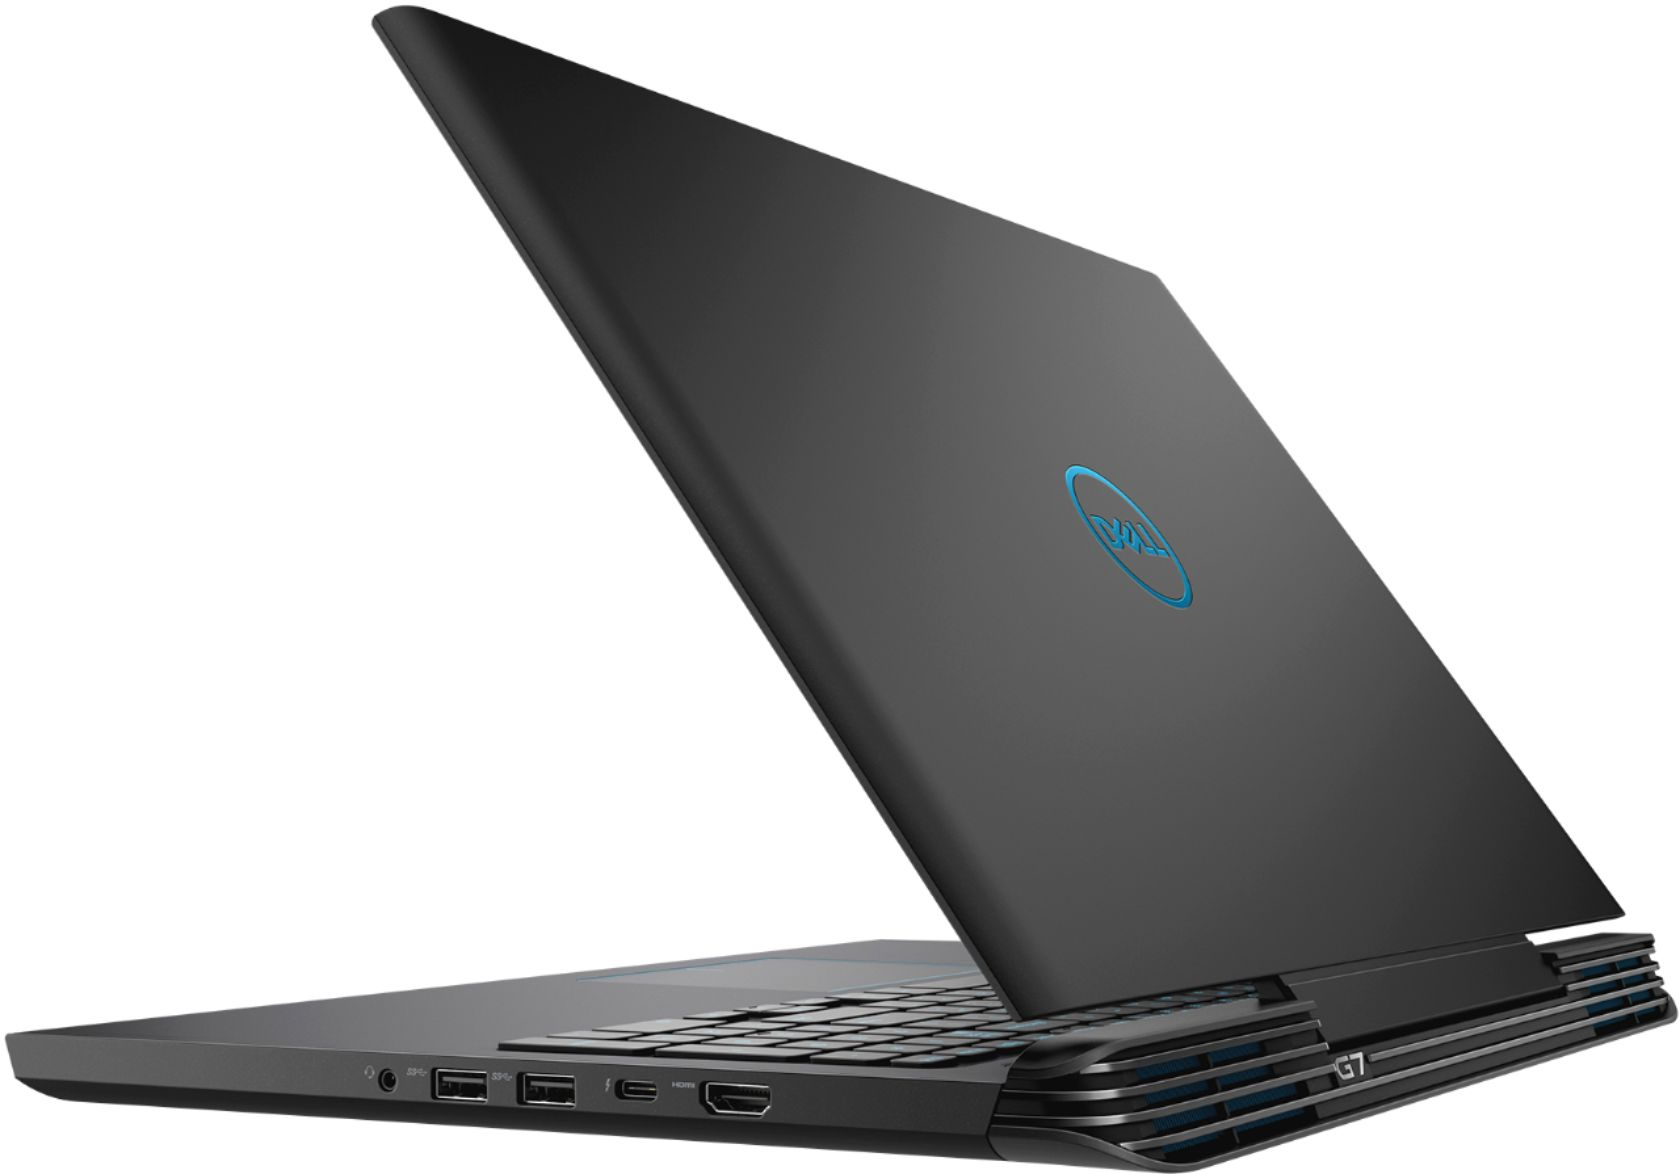 hight resolution of dell g7 15 6 laptop intel core i7 16gb memory nvidia geforce gtx 1060 128gb solid state drive 1tb hard drive black i7588 7378blk pus best buy